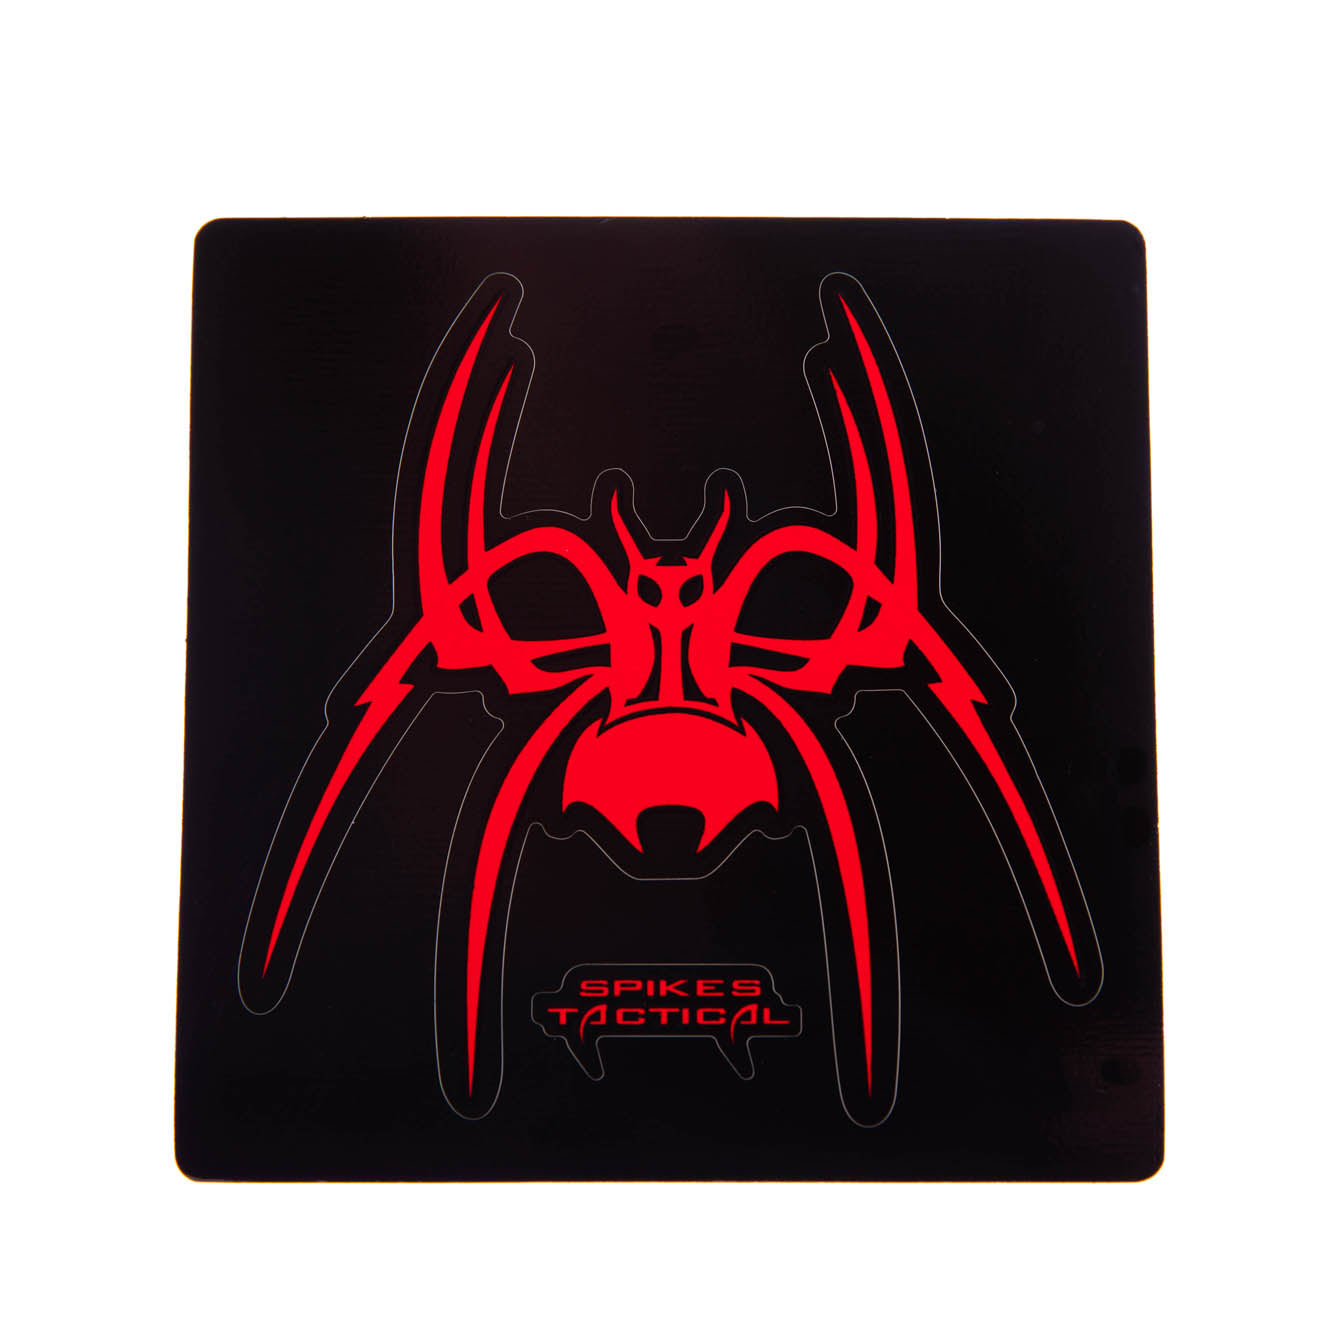 Spider Peel and Stick Decal, 3 Pack (Red, White, and Blue)